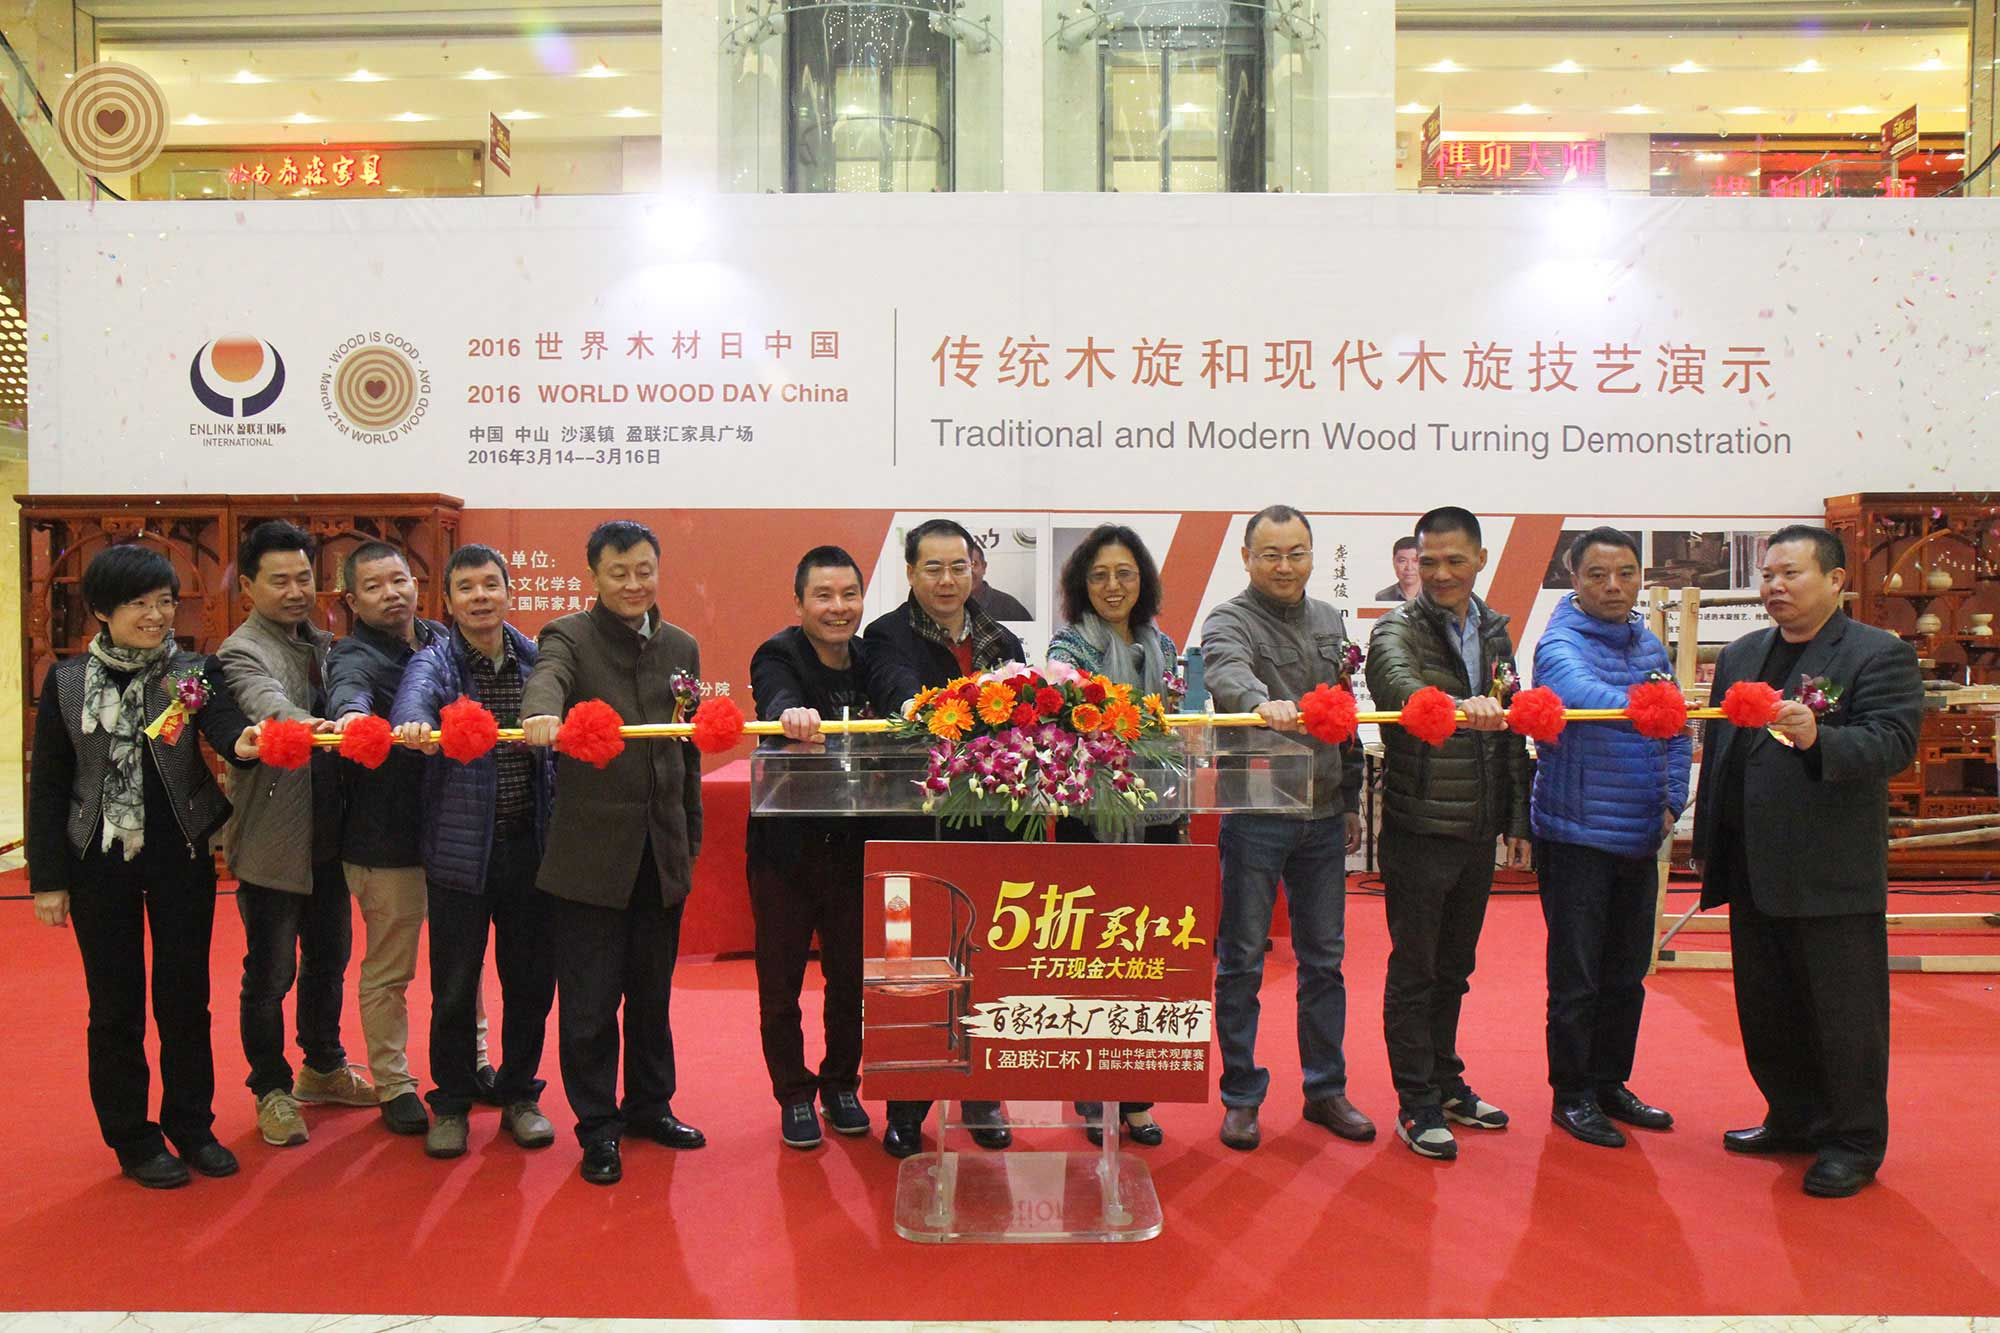 2016 World Wood Day, Regional Event, China, Guangdong